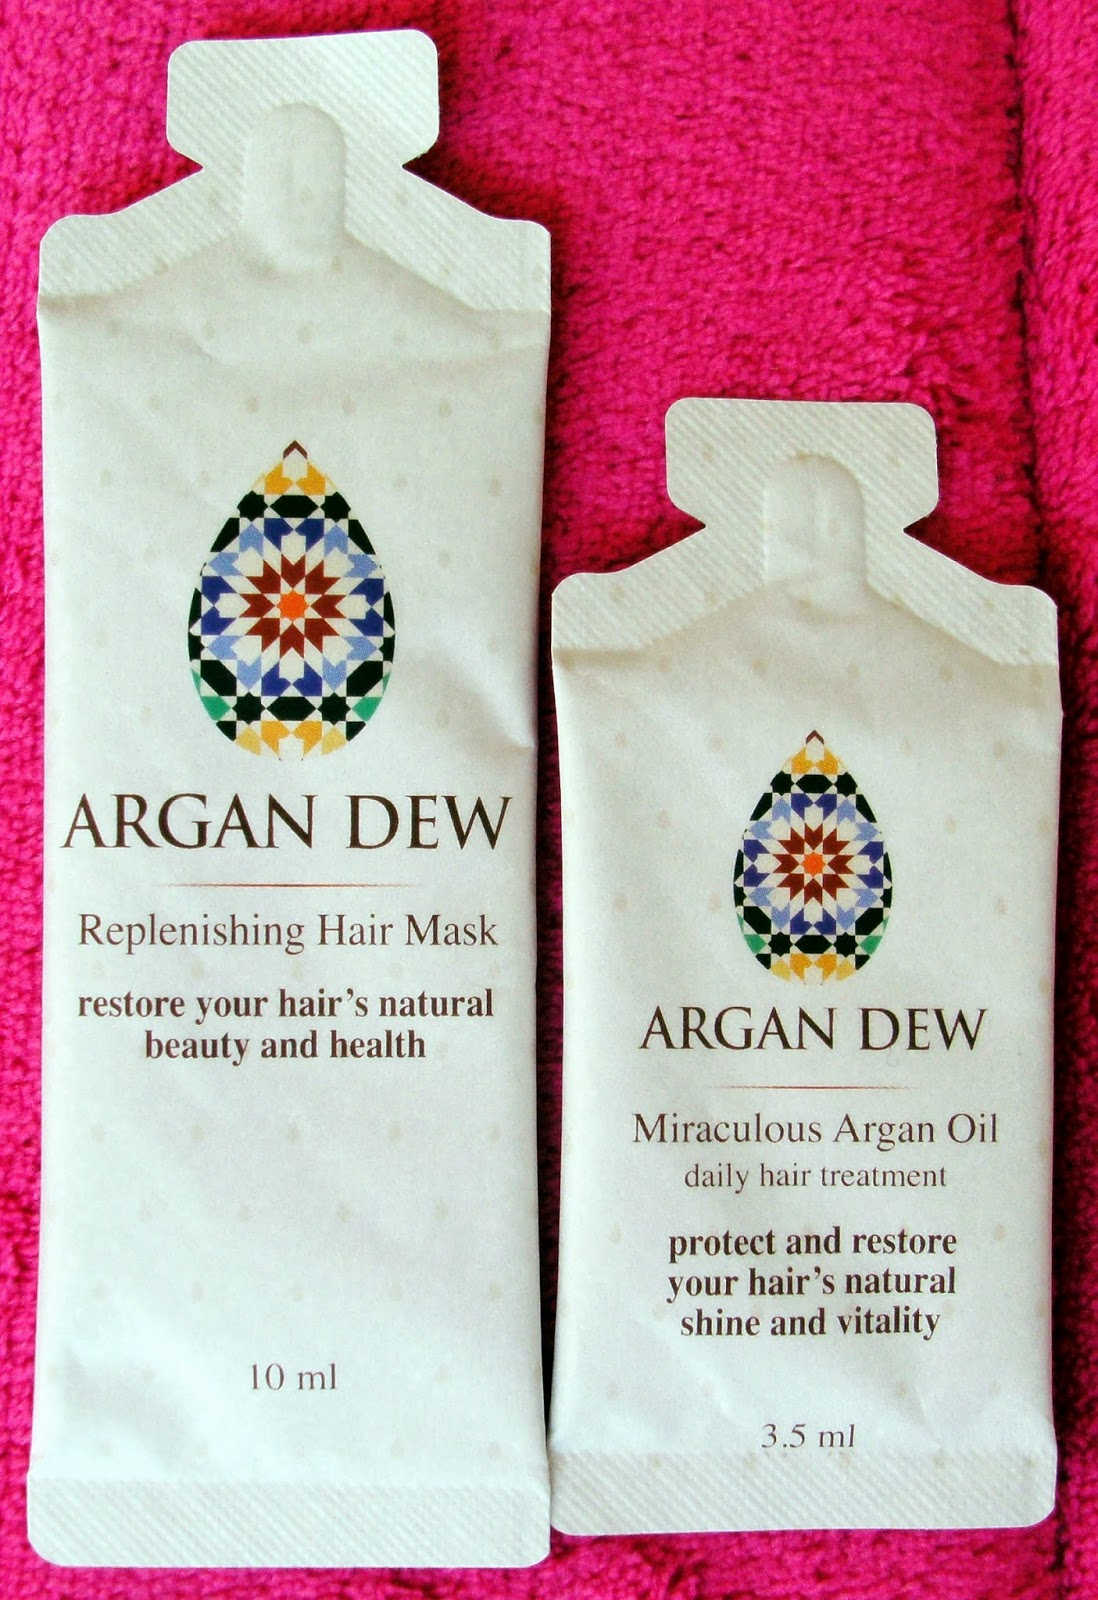 Arga Dew Replenishing Hair Mask and Miraculous Argan Oil Samples